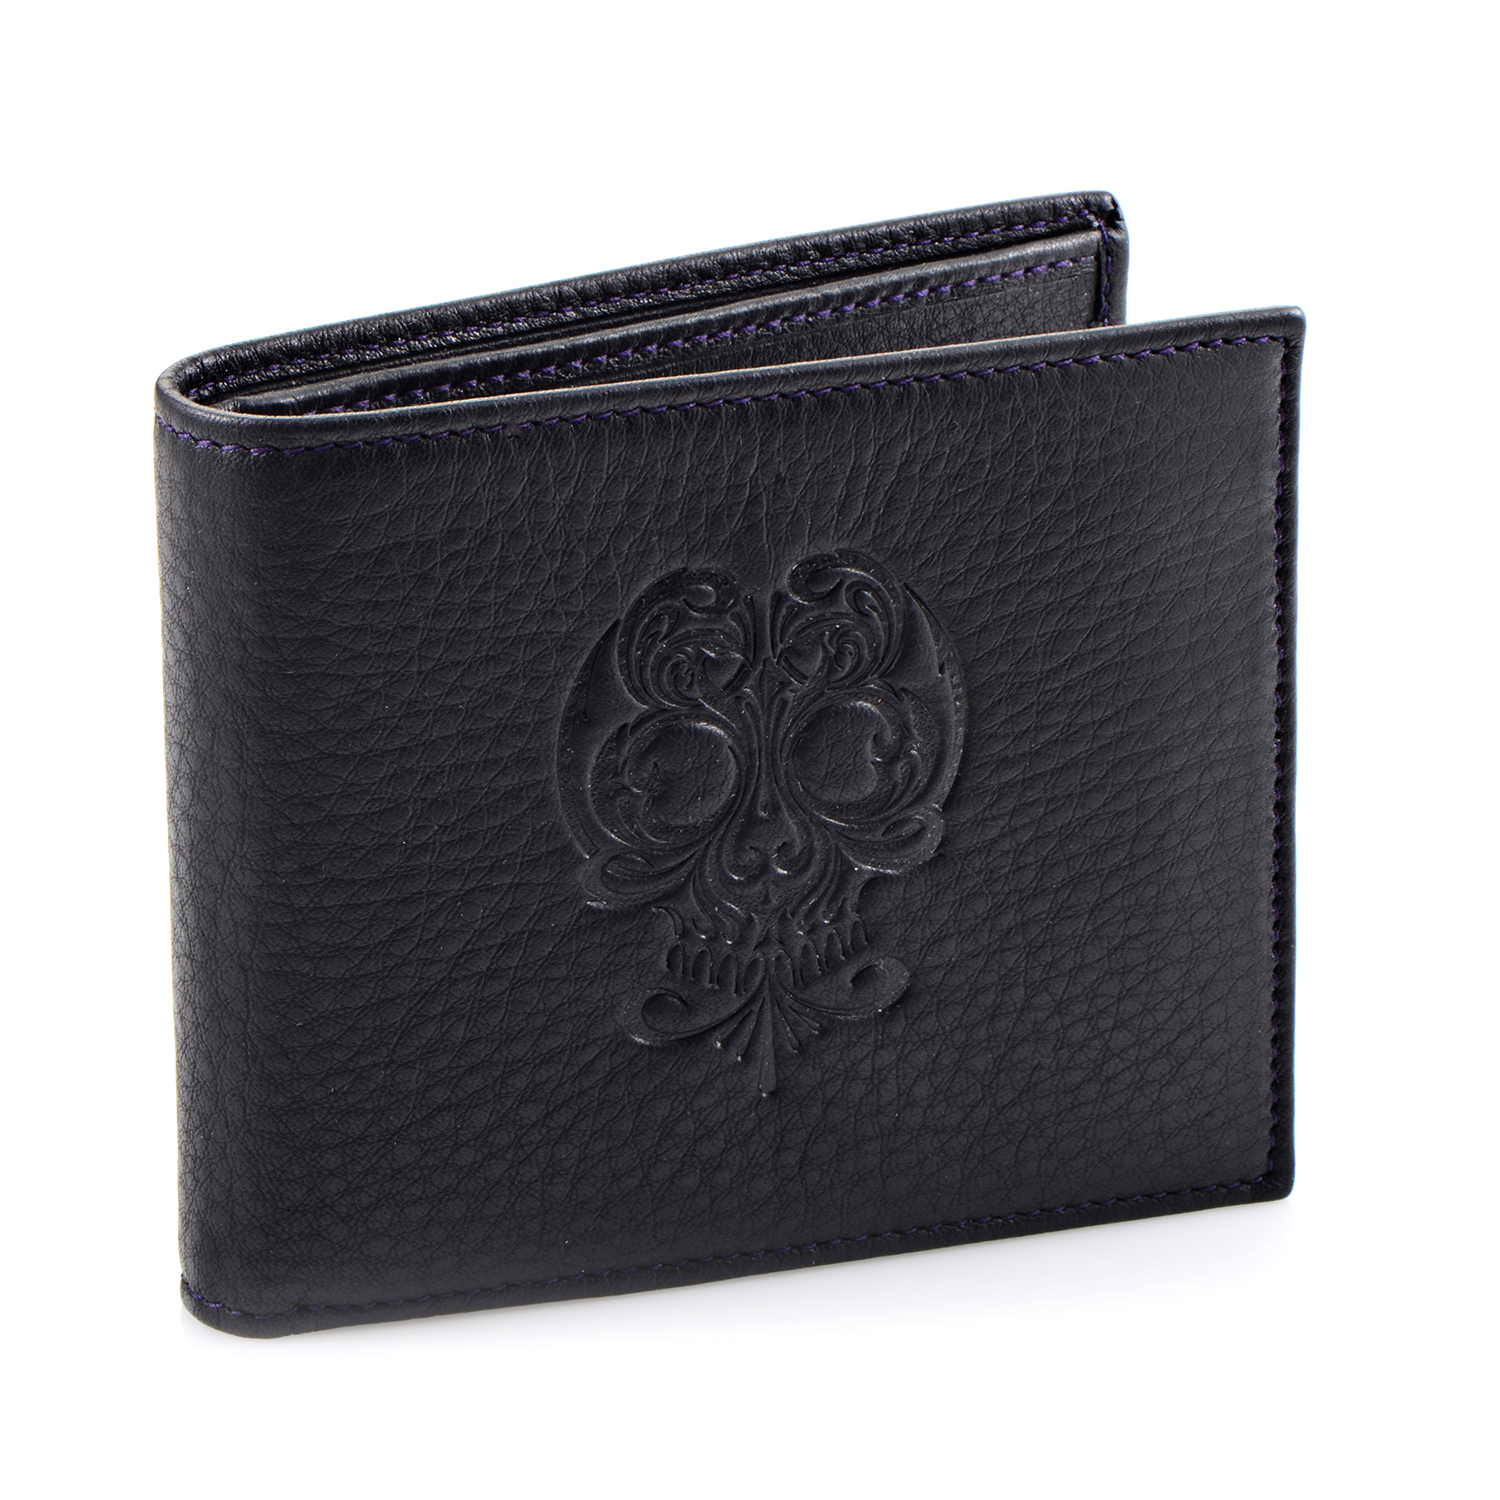 Calfskin Leather Wallet 3014091